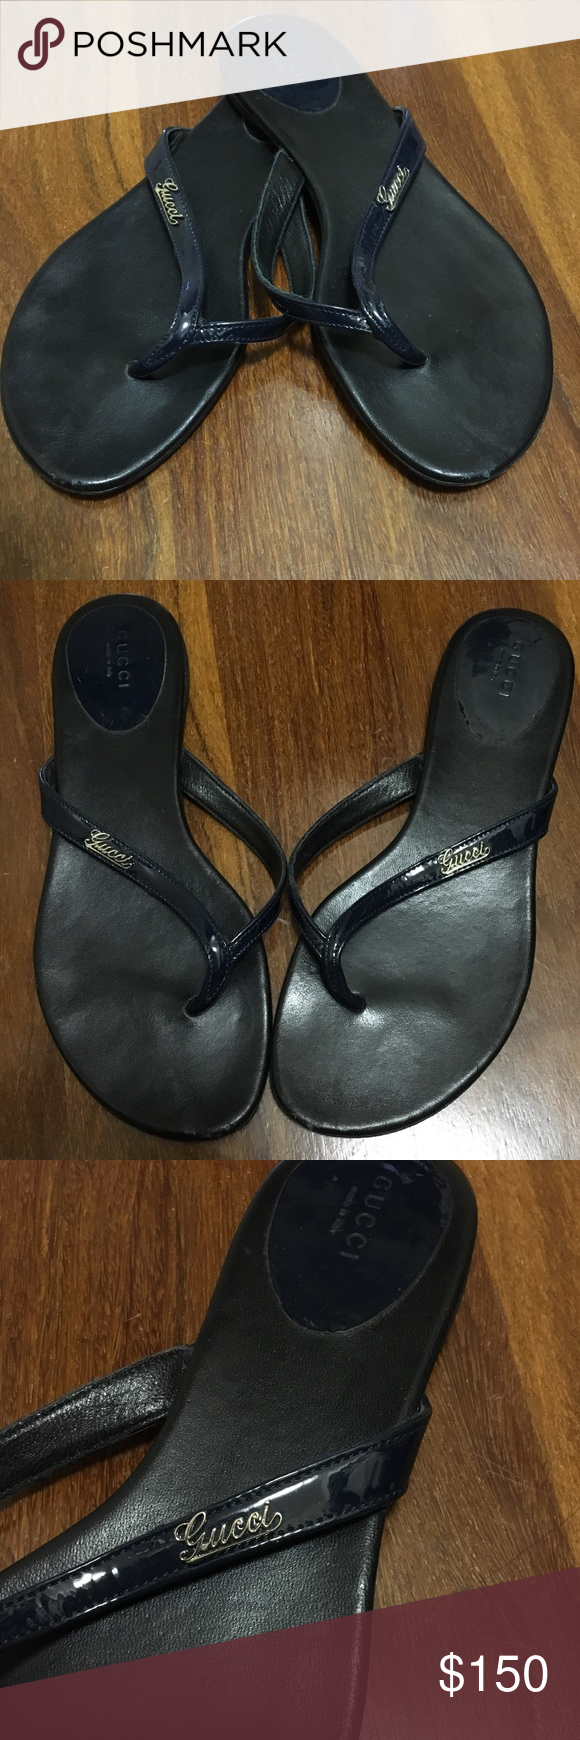 e012507db1c264 AUTHENTIC GUCCI flip flops 💯 AUTHENTIC GUCCI Sandals flip flops. Patent  navy blue with script logos. Small signs of wear see photos.